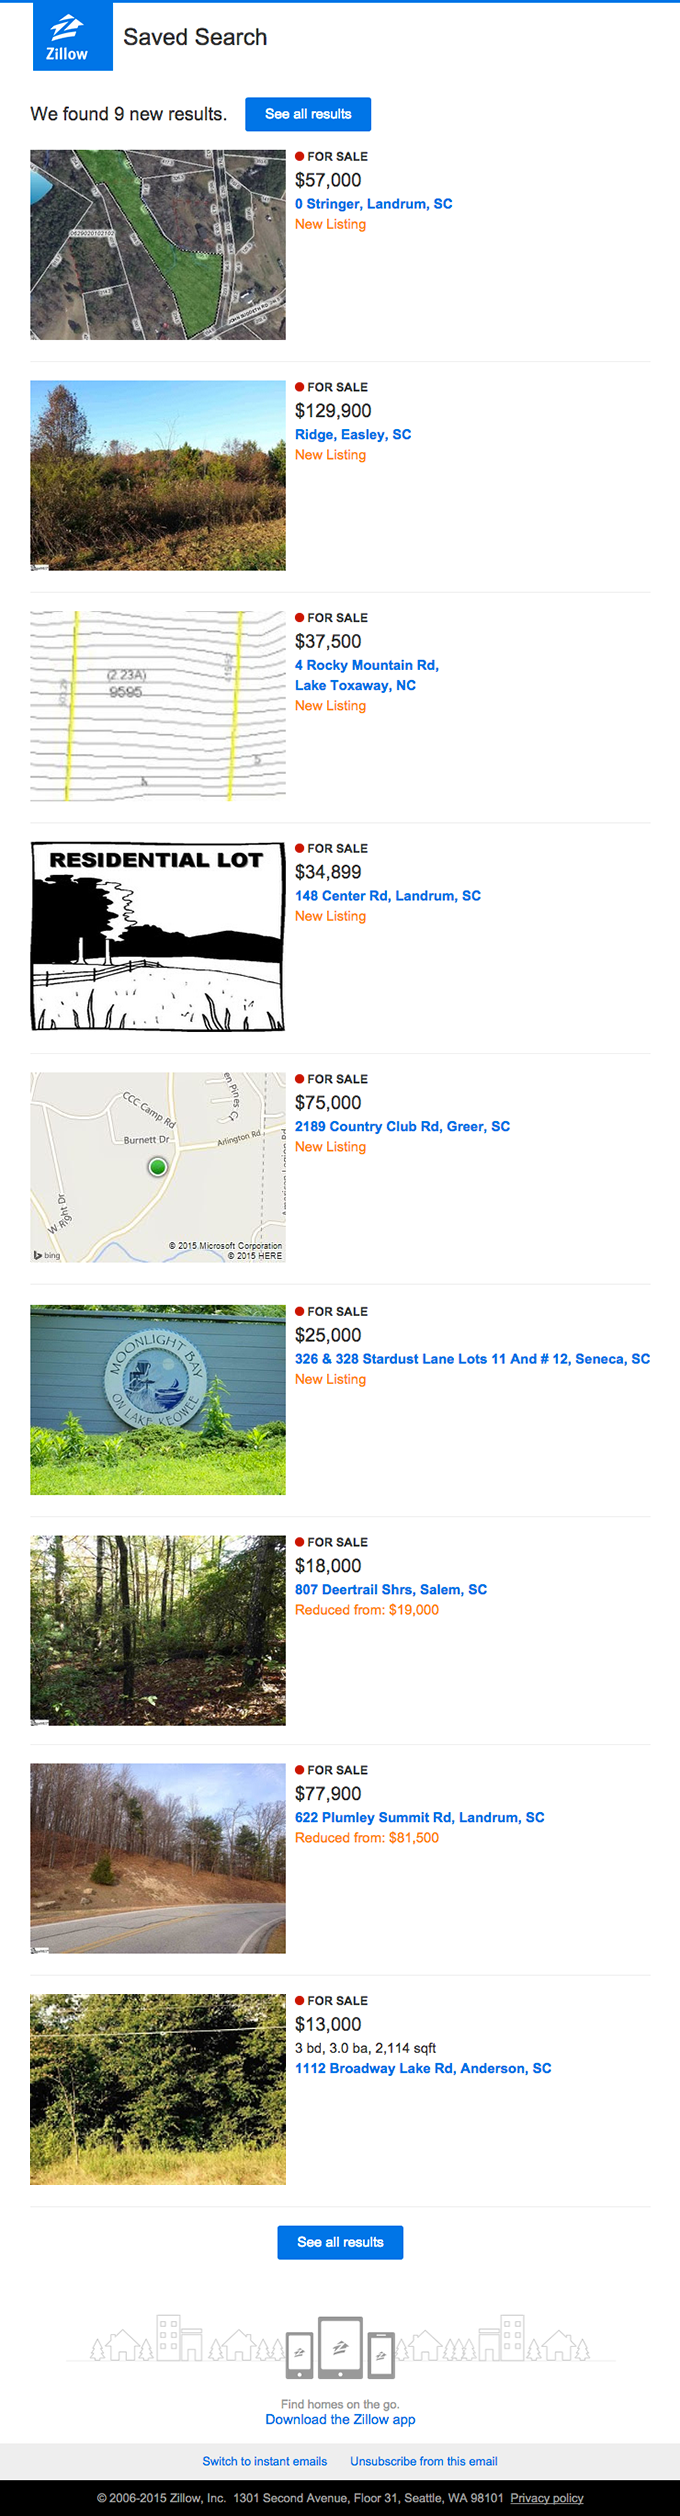 9 Results – Your For Sale, Potential Listings near Easley 29640 Search